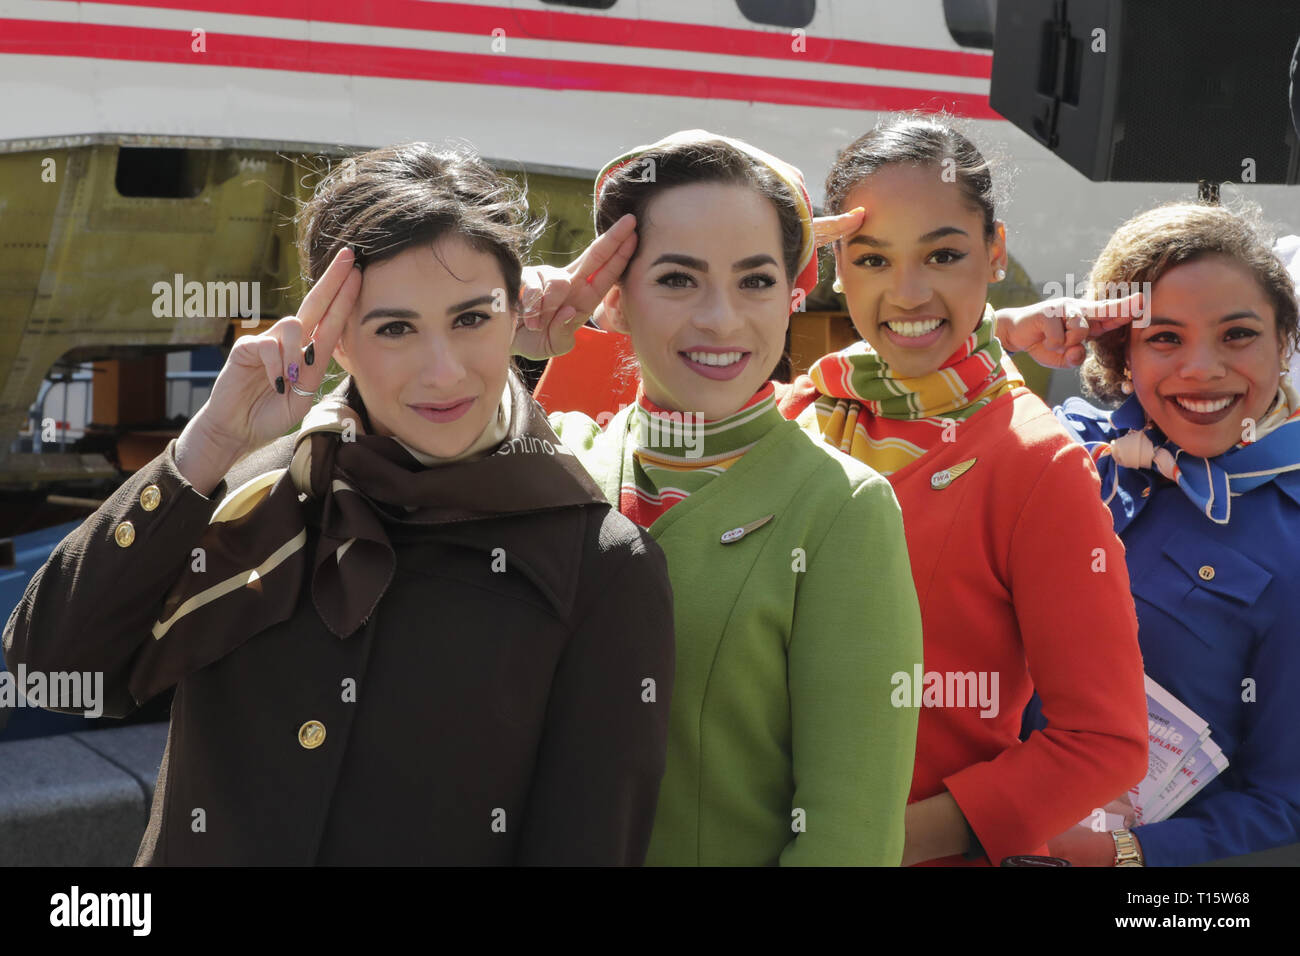 New York, NY, USA. 23rd Mar, 2019. Times Square, New York, USA, March 23, 2019 - Actors dressed as pilots, flight attendants and mechanics from the 1960s and 70s helps celebrate the TWA Hotel Project, including the restoration of the 1958 Lockheed Constellation plane Connie today in Times Square, Manhattan.Photo: Luiz Rampelotto/EuropaNewswire Credit: Luiz Rampelotto/ZUMA Wire/Alamy Live News - Stock Image